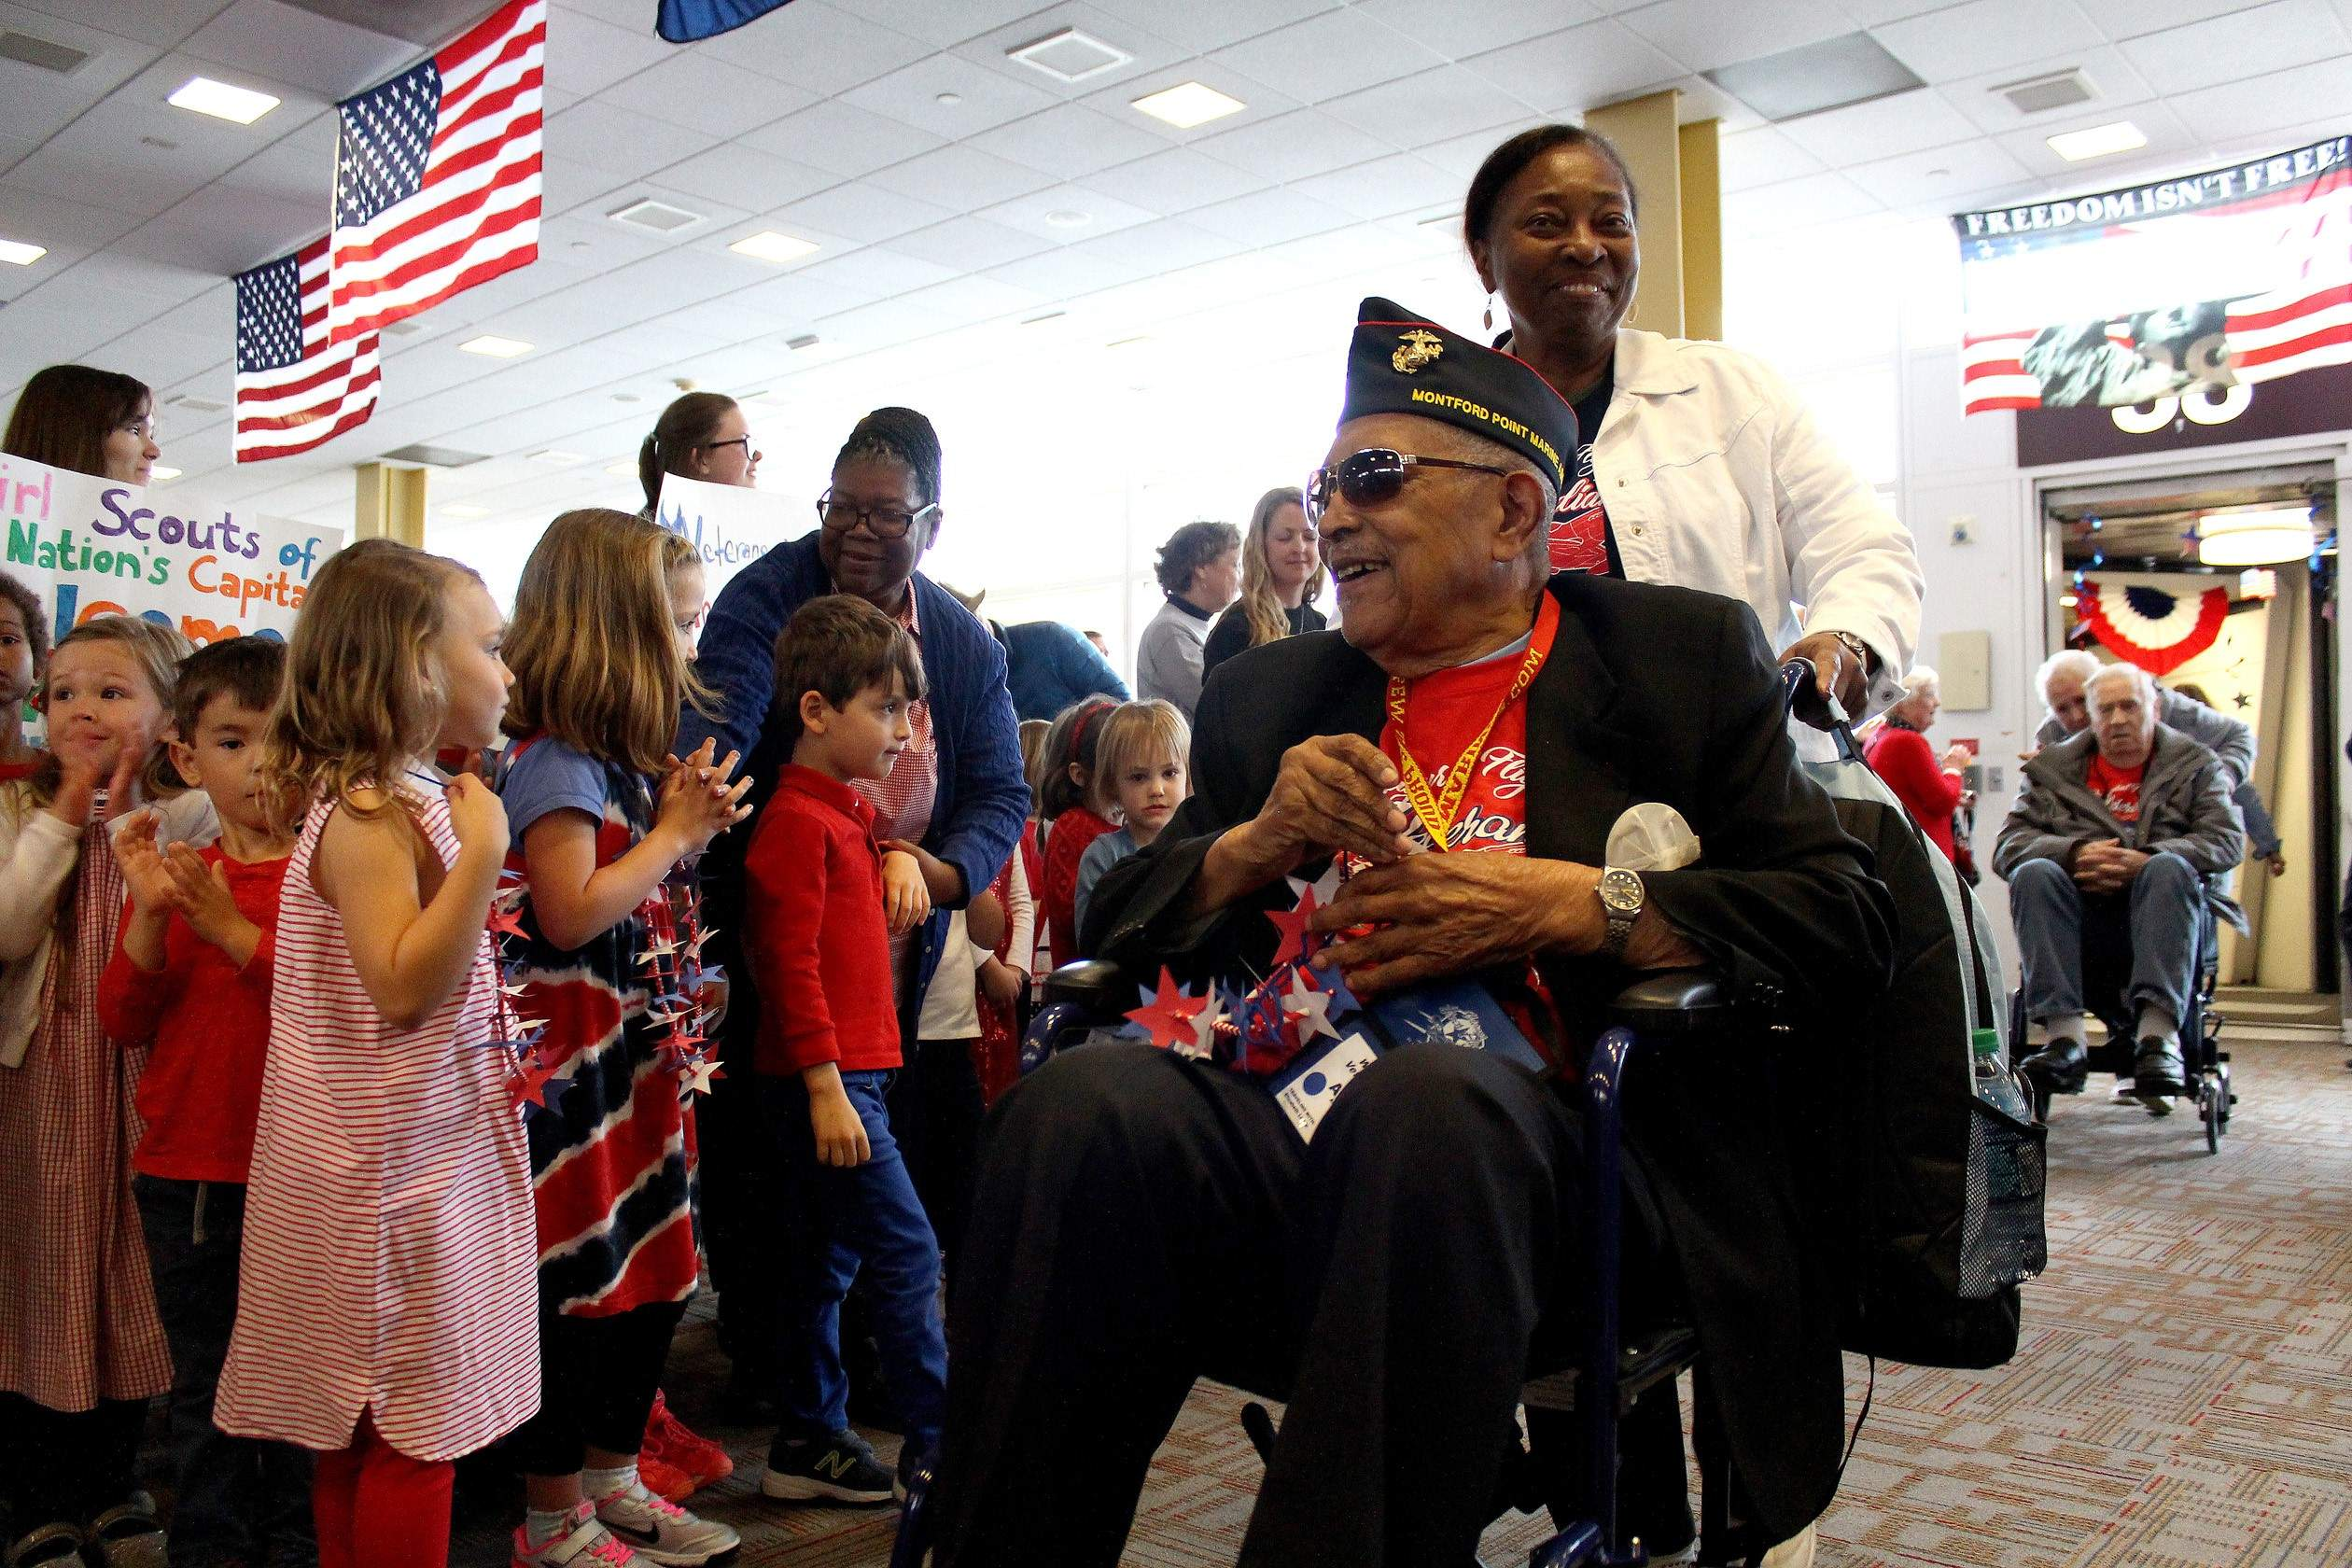 Reverend Archibald Mosely of Carbondale, a World War II veteran, was escorted off of the plane into Washington D.C. by his daughter Elizabeth Lewin, only to be greeted by a group of pre-kindergarten students who presented him with a handmade necklace, a standing ovation from the airport terminal, and music from a local band. Surprise welcomes in D.C. are a staple of the Honor Flight program, which seeks to show veterans the impact and importance of their service for their country.